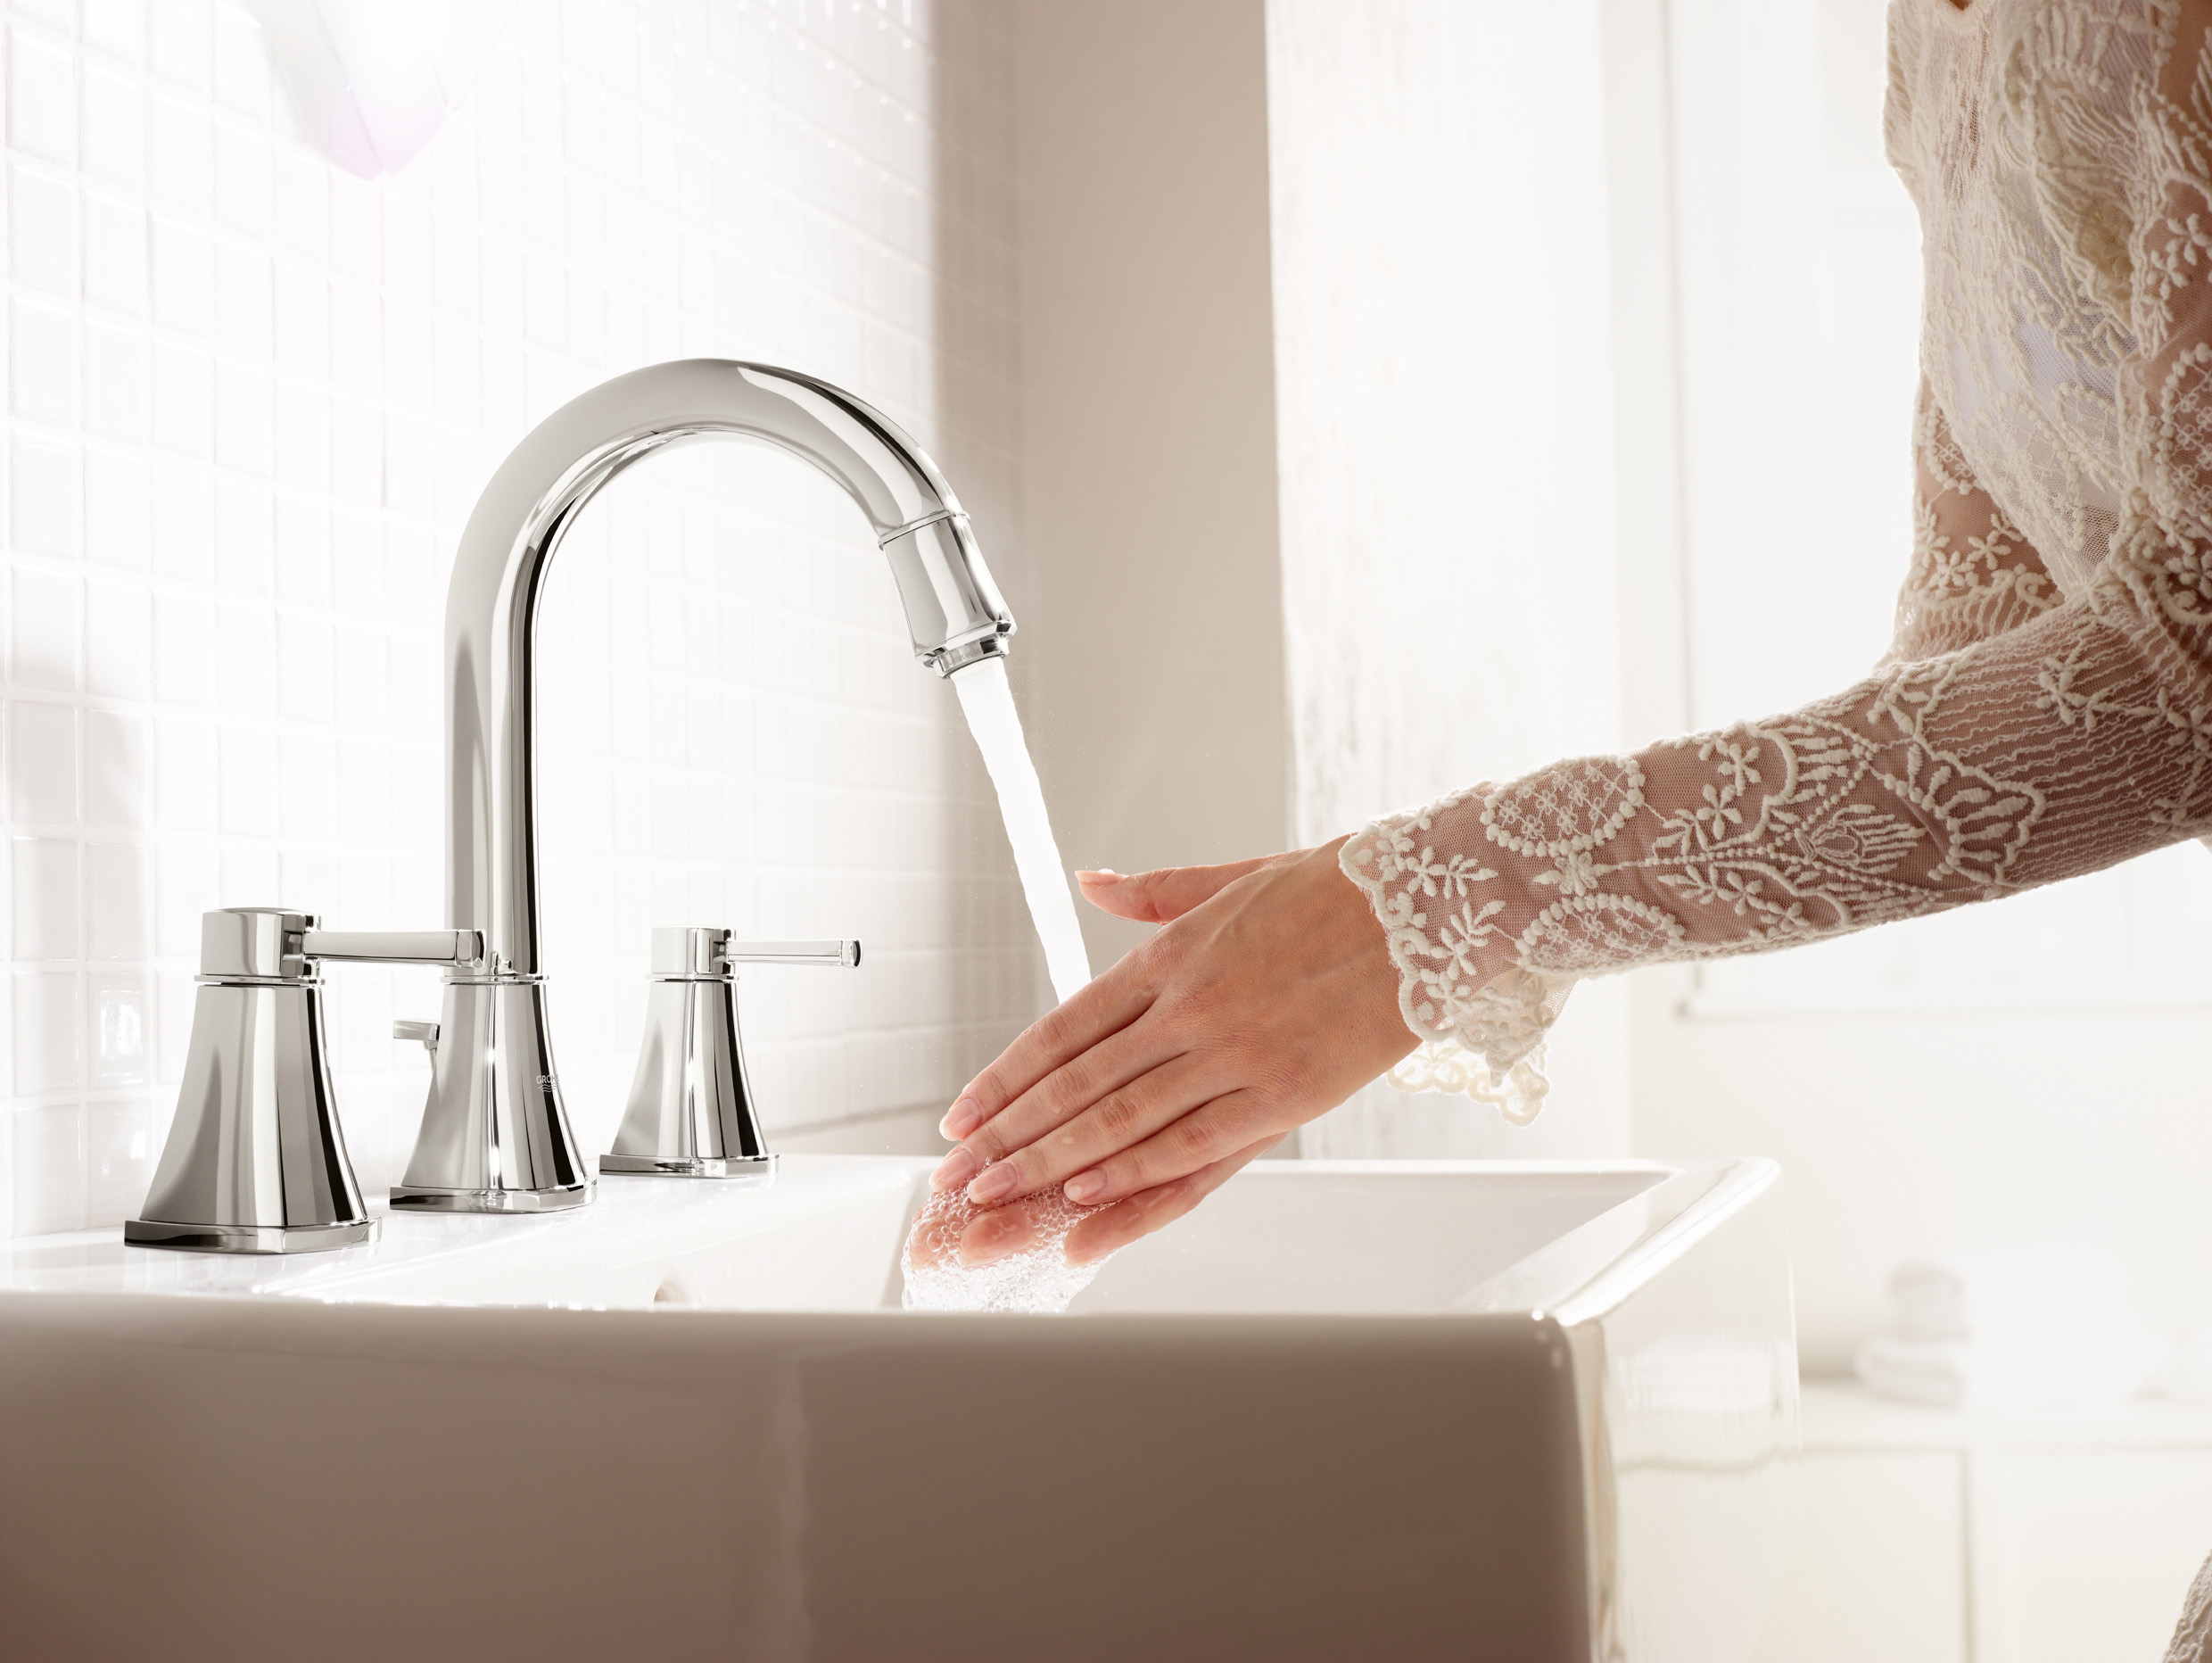 Find your dream team of washbasin and faucet